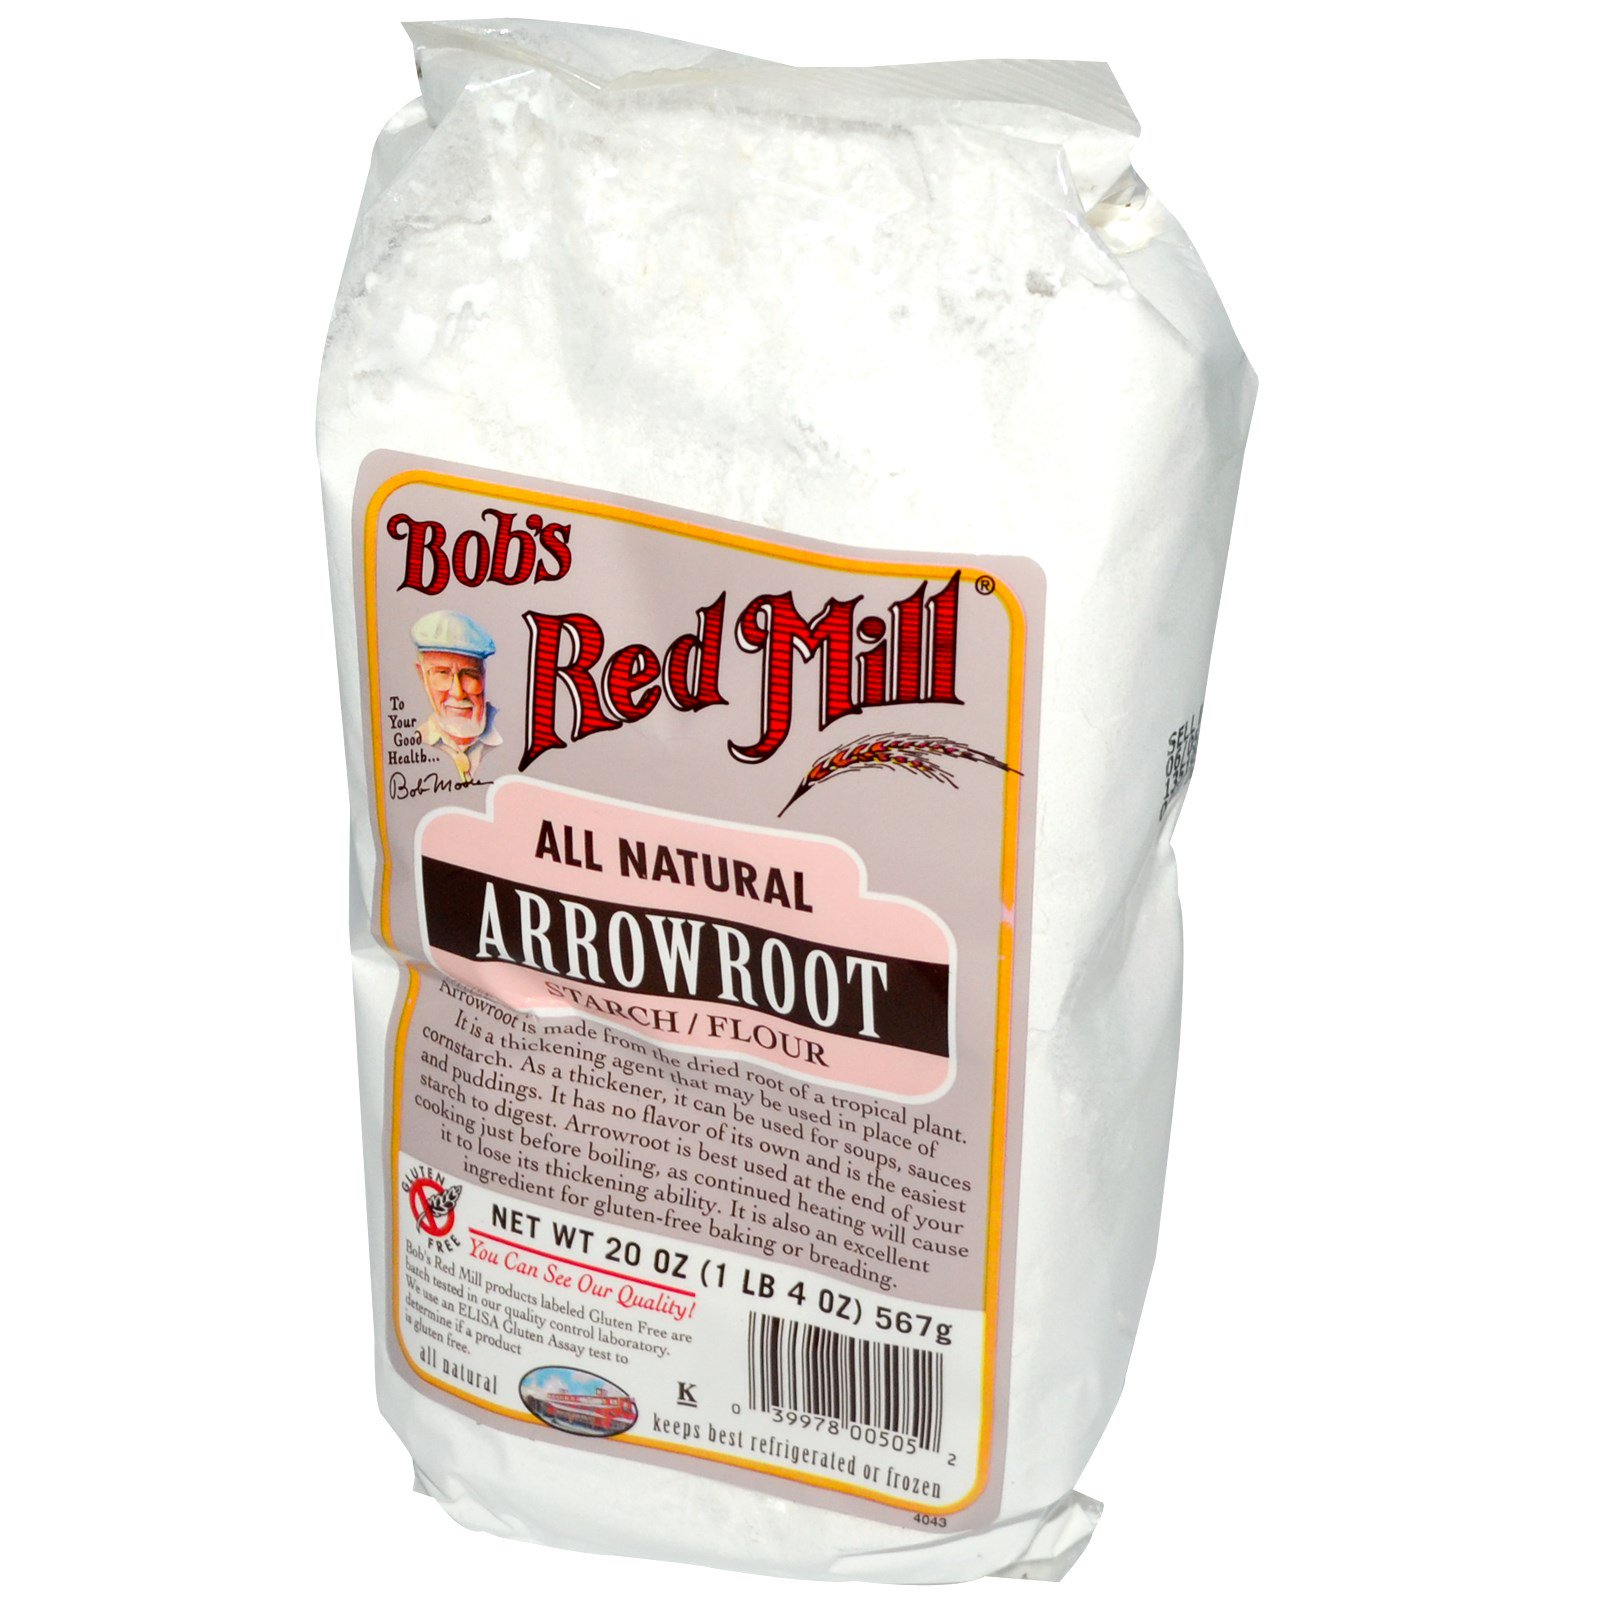 Bob's Red Mill, Arrowroot Starch/Flour, All Natural, 20 oz (567